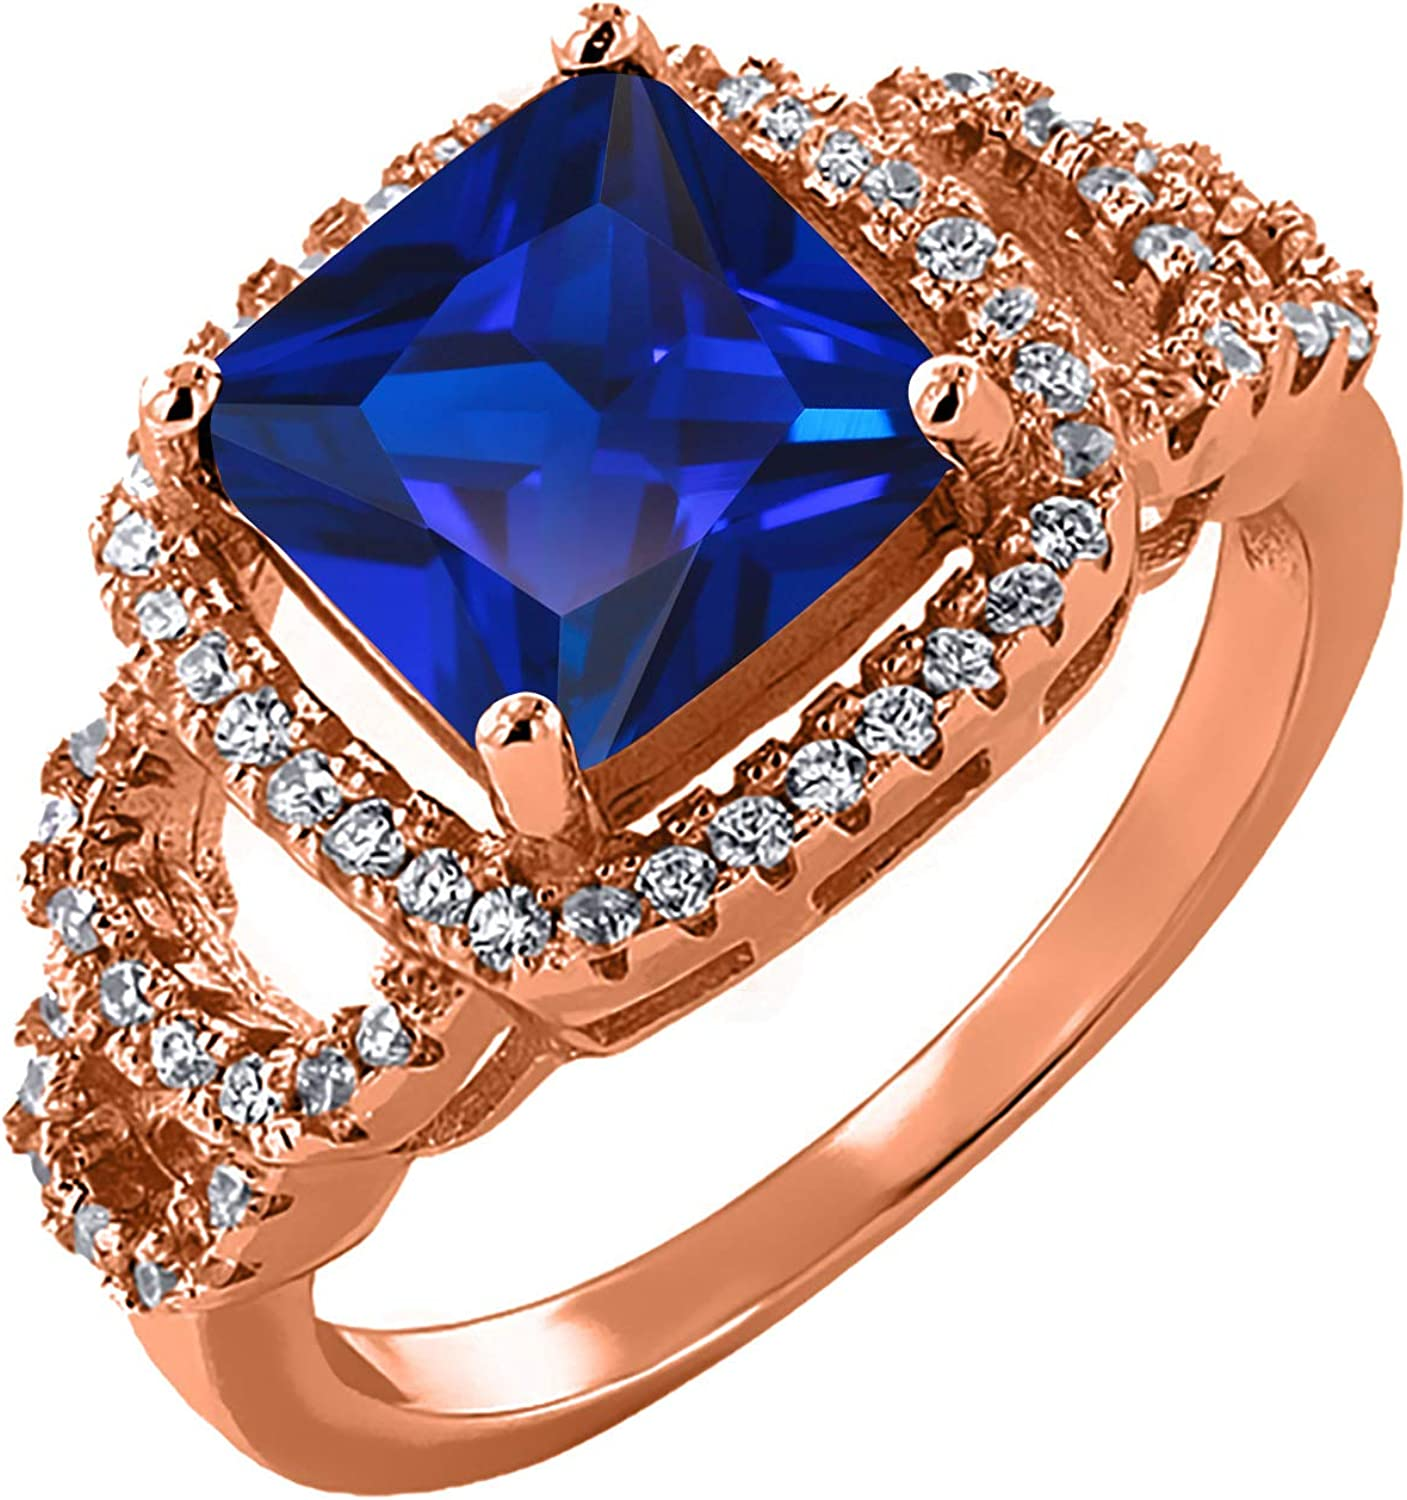 Gem Stone King 3.80 Ct Princess 18K Created G Financial sales sale Rose Sapphire Discount is also underway Blue